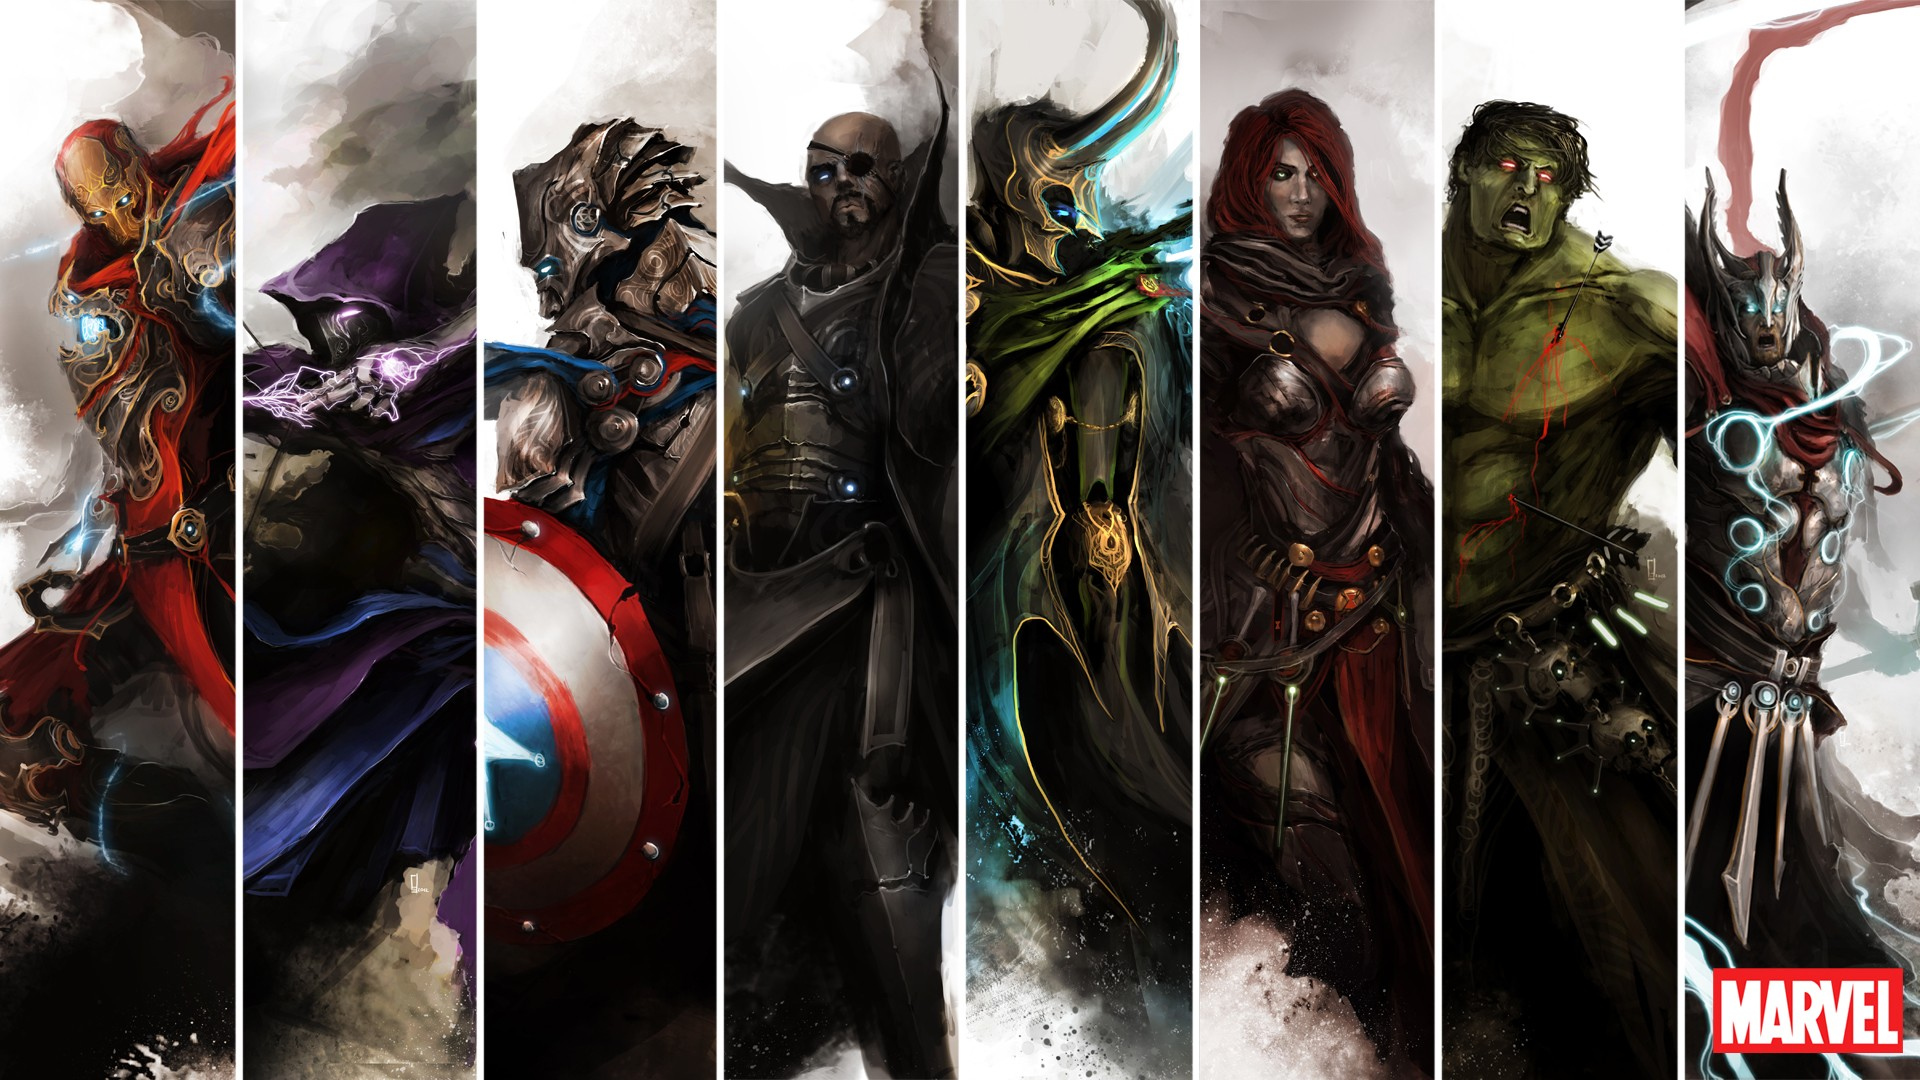 marvel wallpaper 1920x1080 Wallpapers HD 1080p Desktop Wallpapers 1920x1080